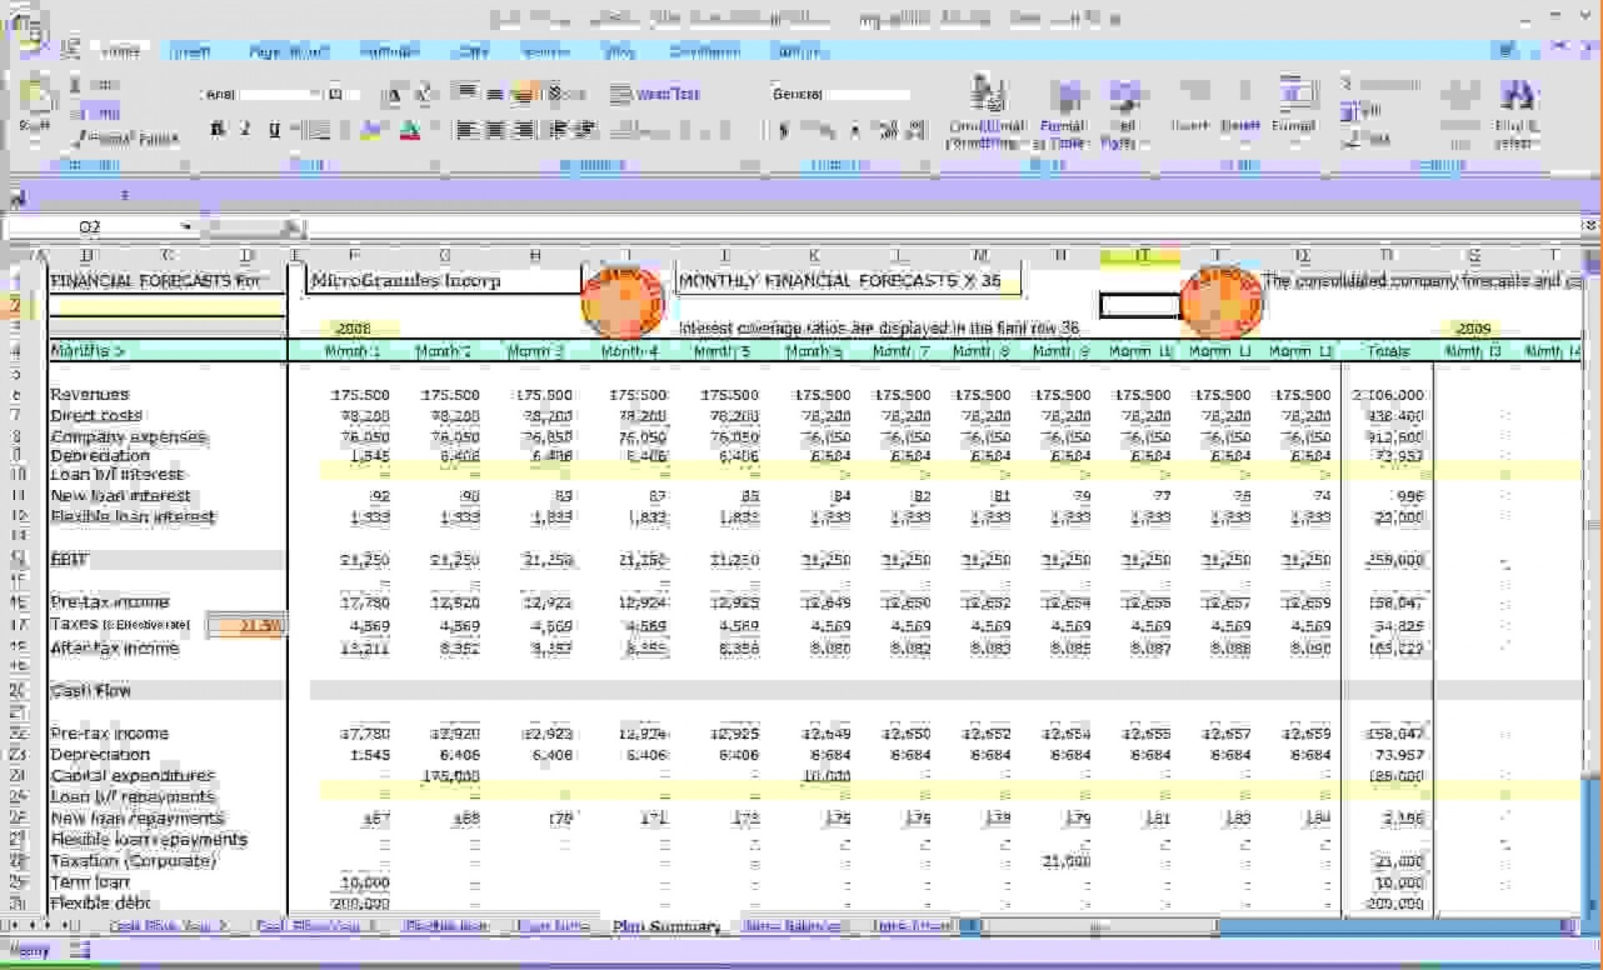 Weekly Cash Flow Forecast Spreadsheet Pertaining To 020 Cash Flow Forecast Templates Template Ideas ~ Ulyssesroom